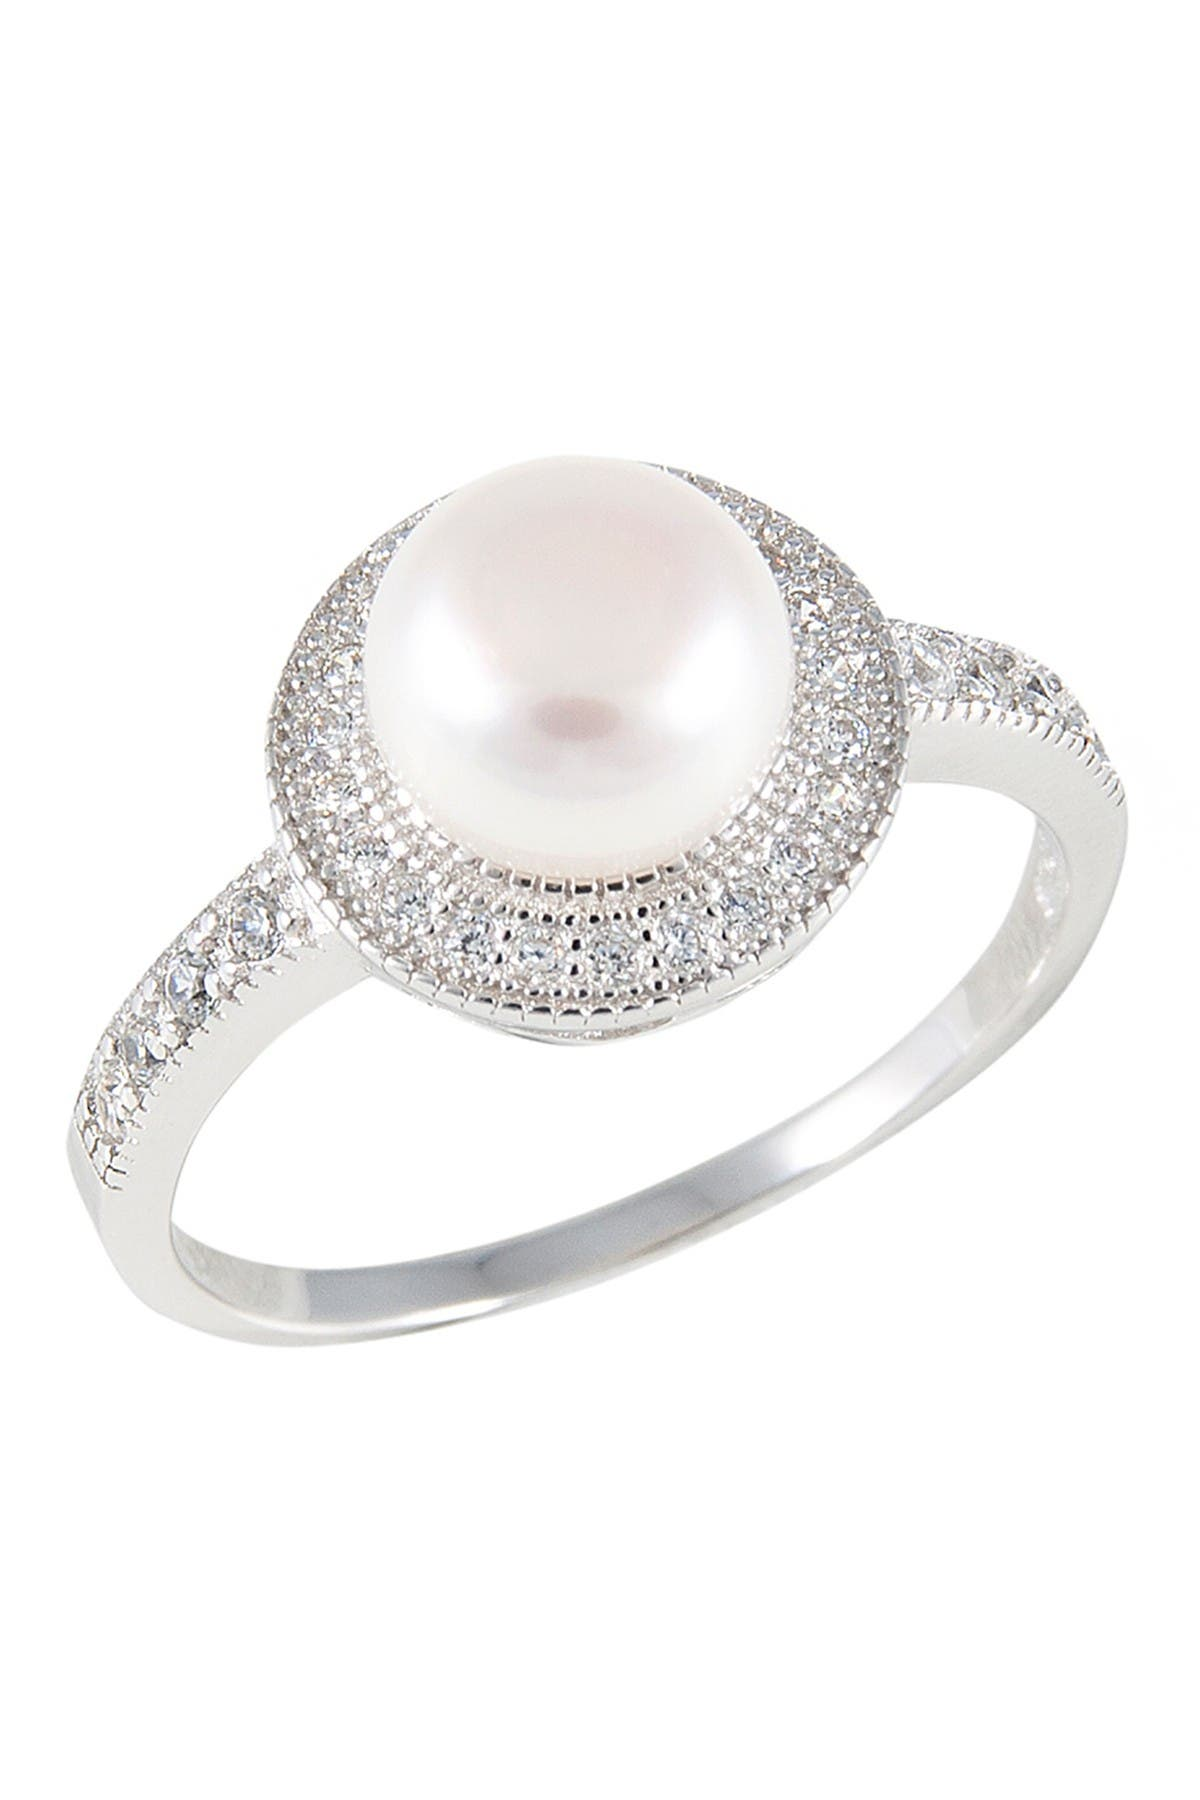 Image of Splendid Pearls 8-9mm Natural White Cultured Freshwater Pearl & CZ Ring